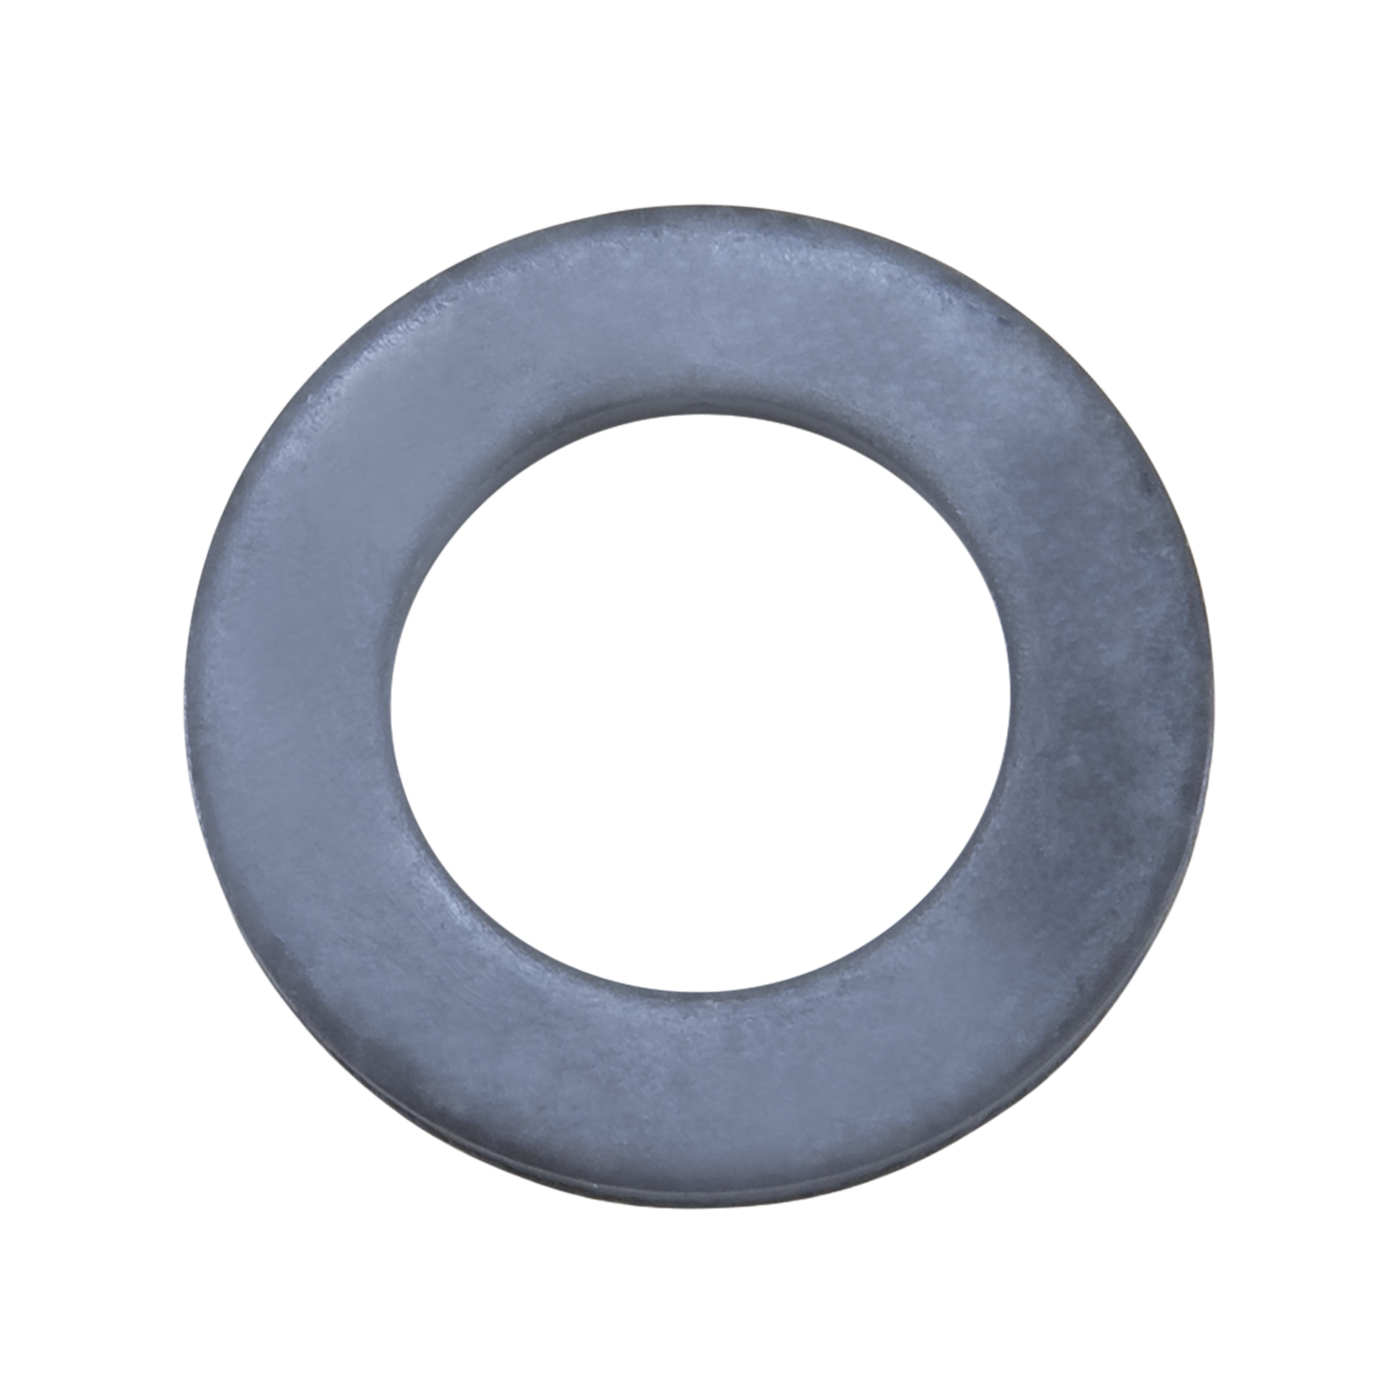 YSPPN-030 - Dana 44 JK / 60 / 70U Pinion Nut Washer replacement